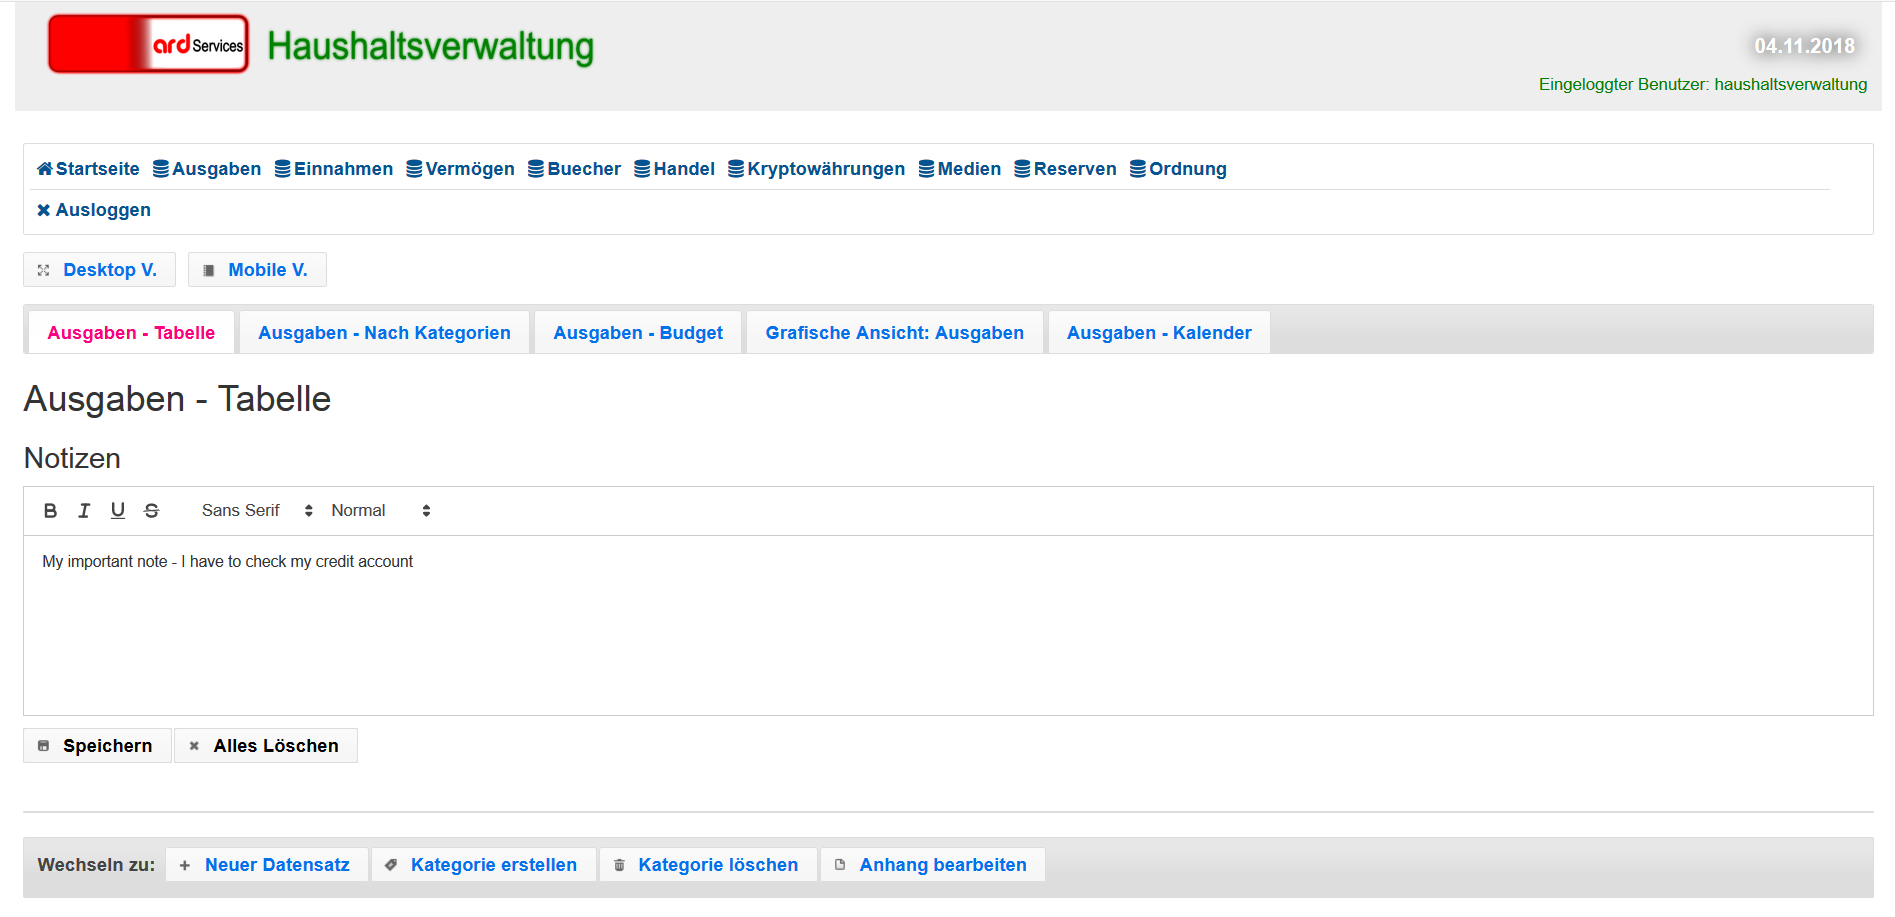 Screenshot of Application Haushaltsverwaltung